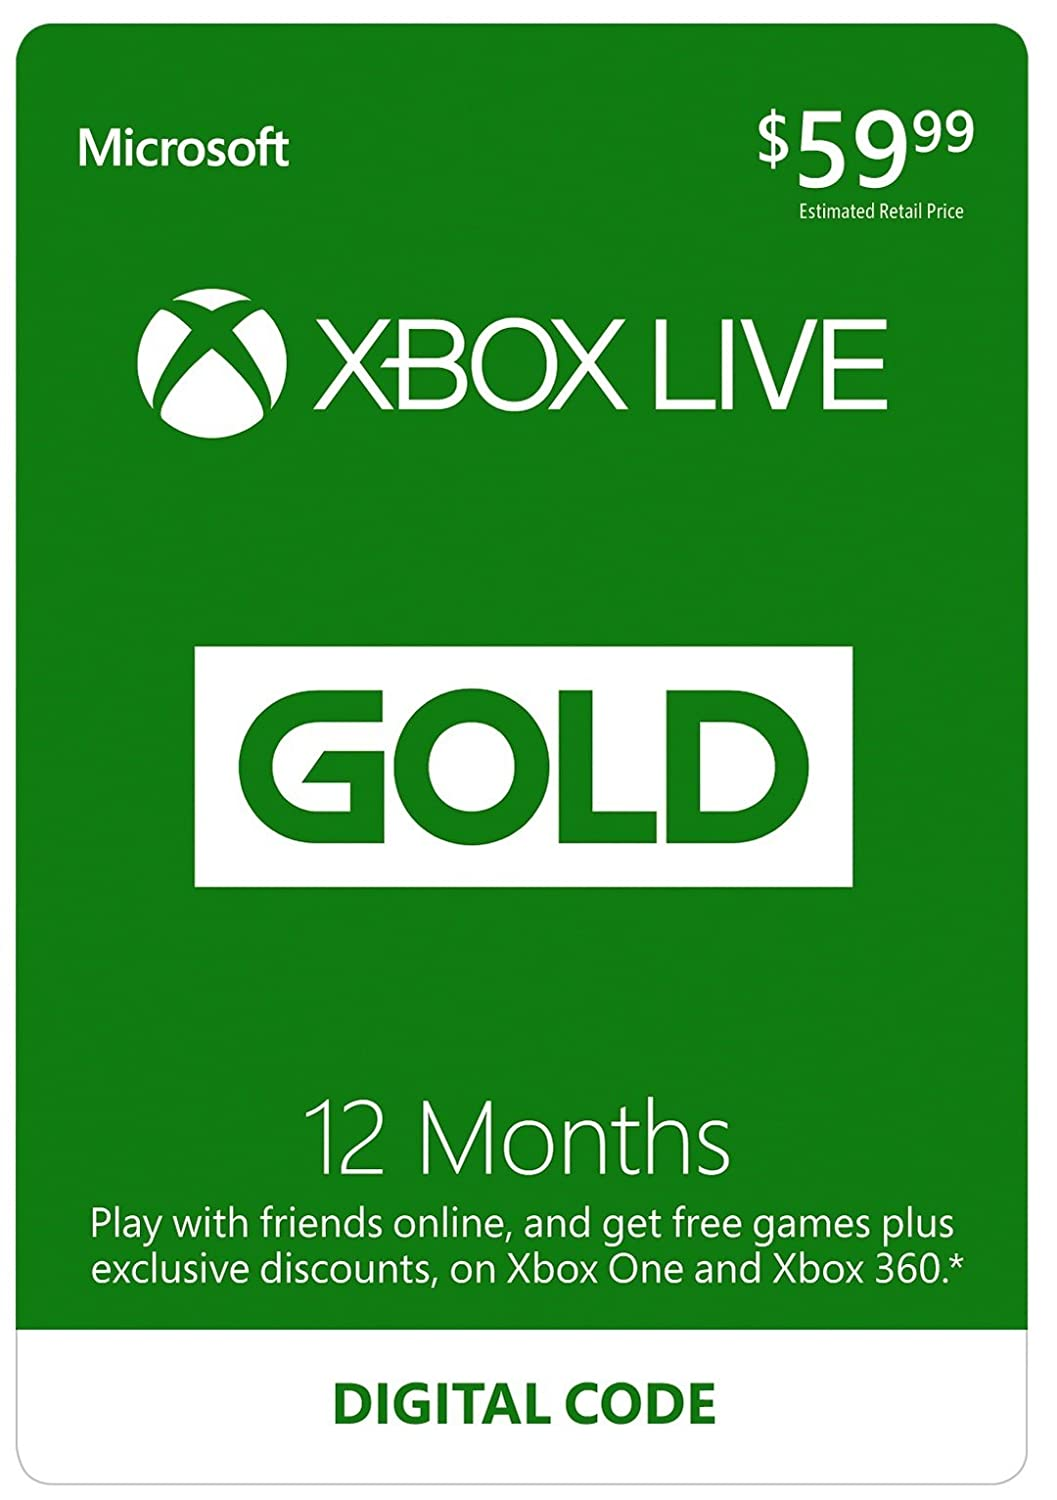 Free Shipping Amazon Code - Xbox live 12 month gold membership digital code 39 99 with free prime shipping